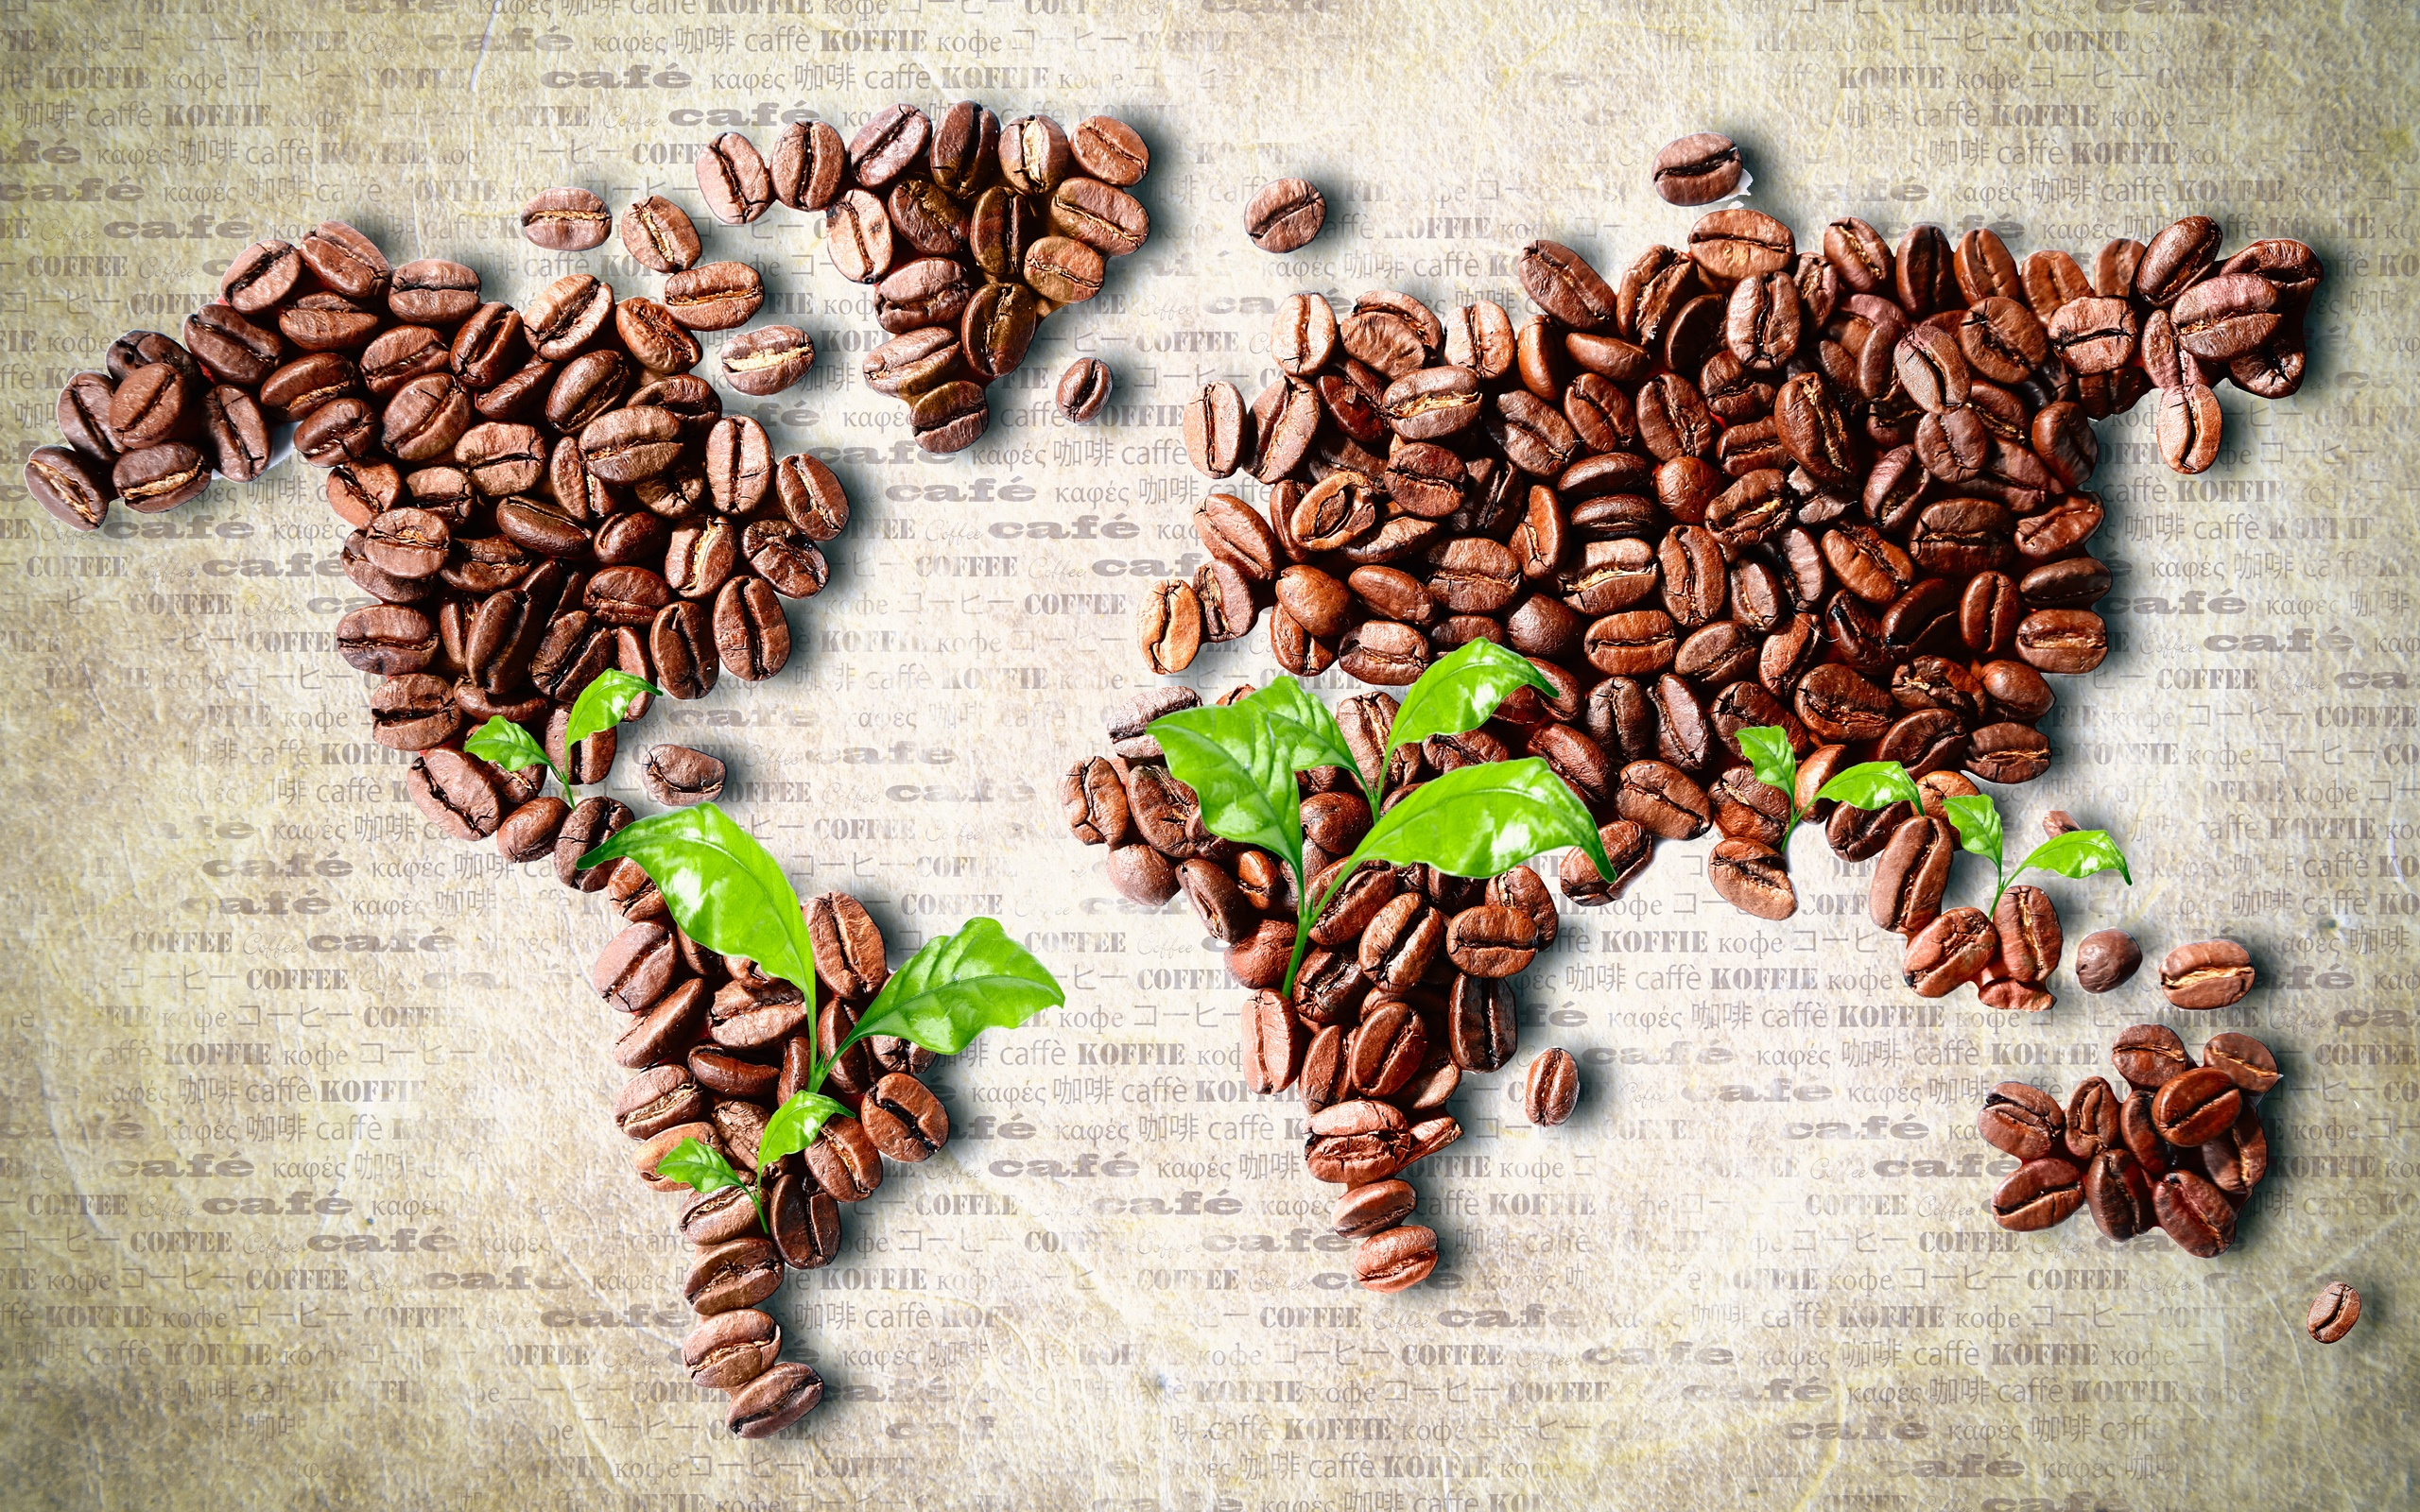 World Map made of Coffee Beans